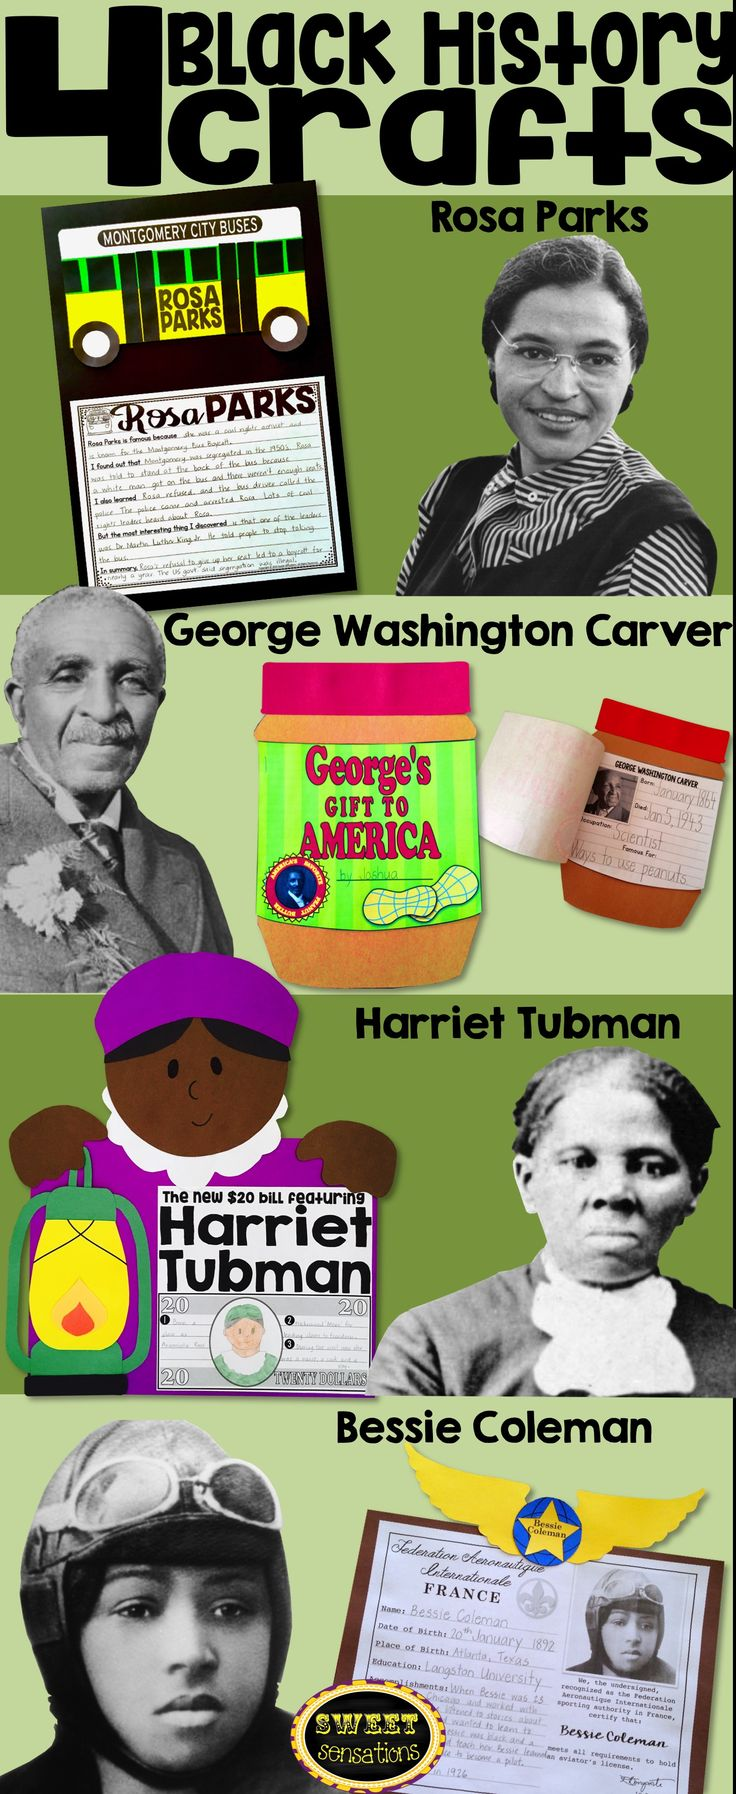 Black History month crafts and activities for K-5 students to study black history icons: George Washington Carver, Bessie Coleman, Harriet Tubman and Rosa Parks